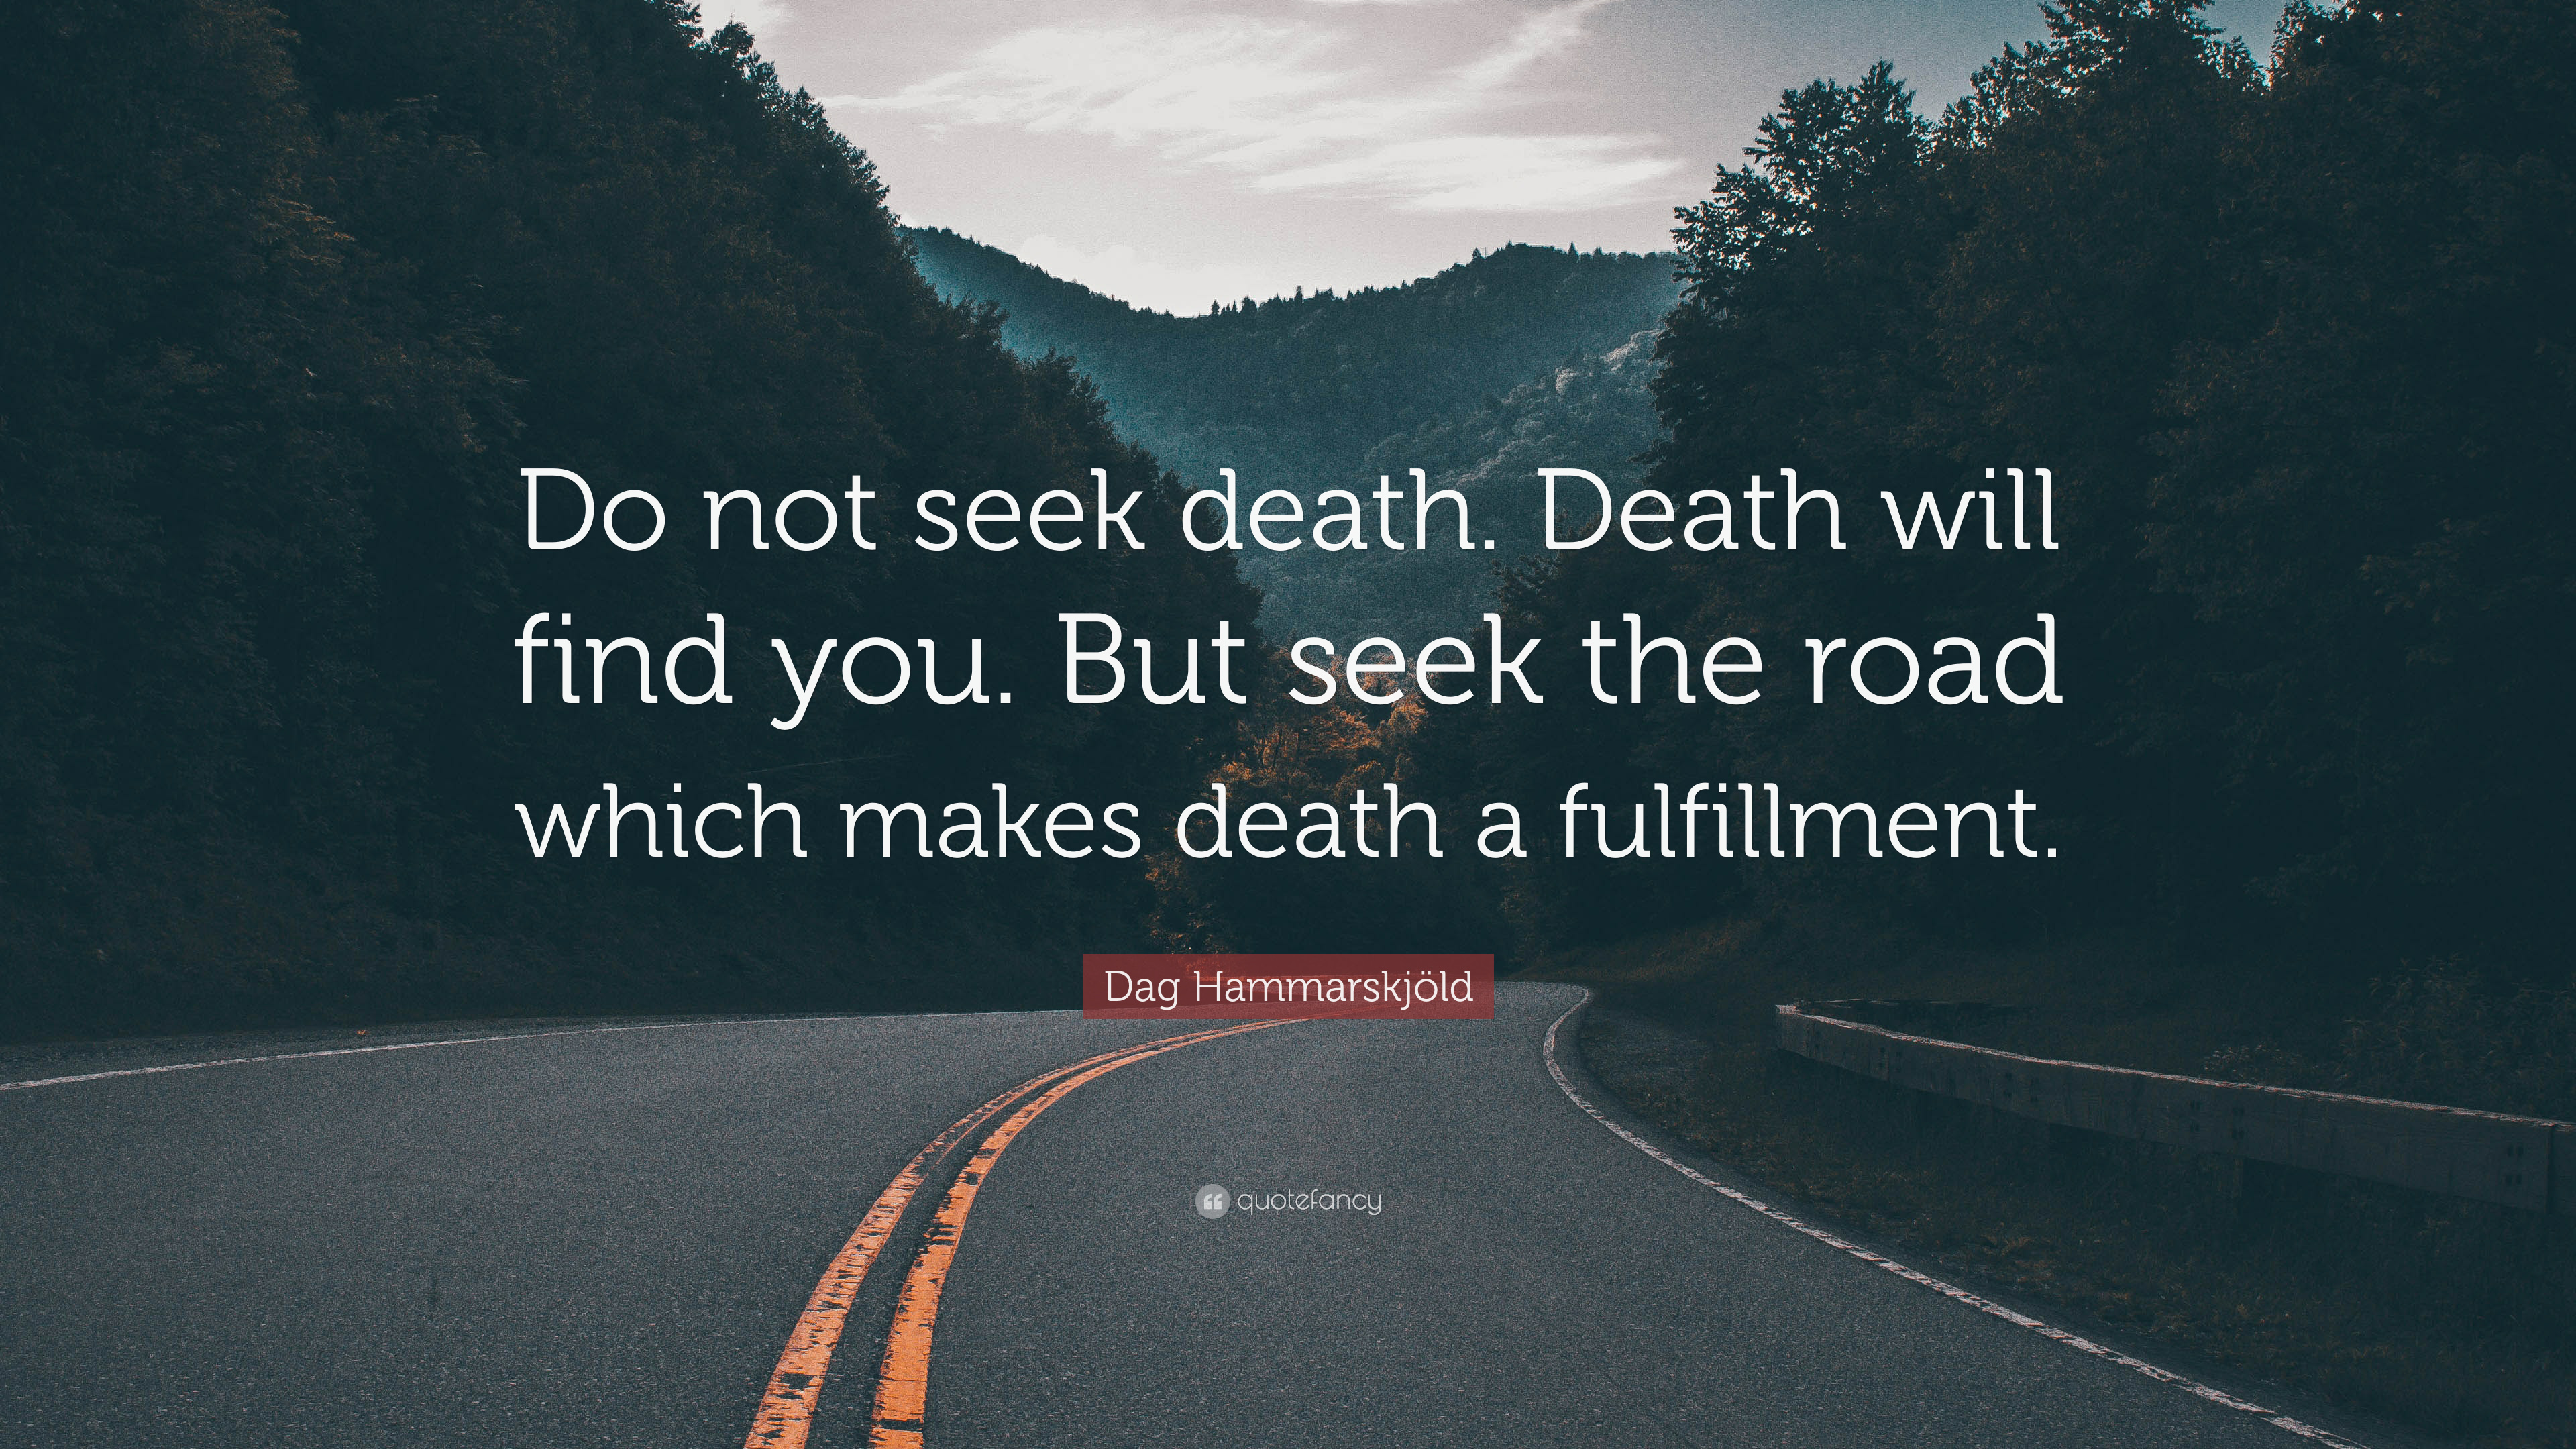 Merveilleux Dag Hammarskjöld Quote: U201cDo Not Seek Death. Death Will Find You. But